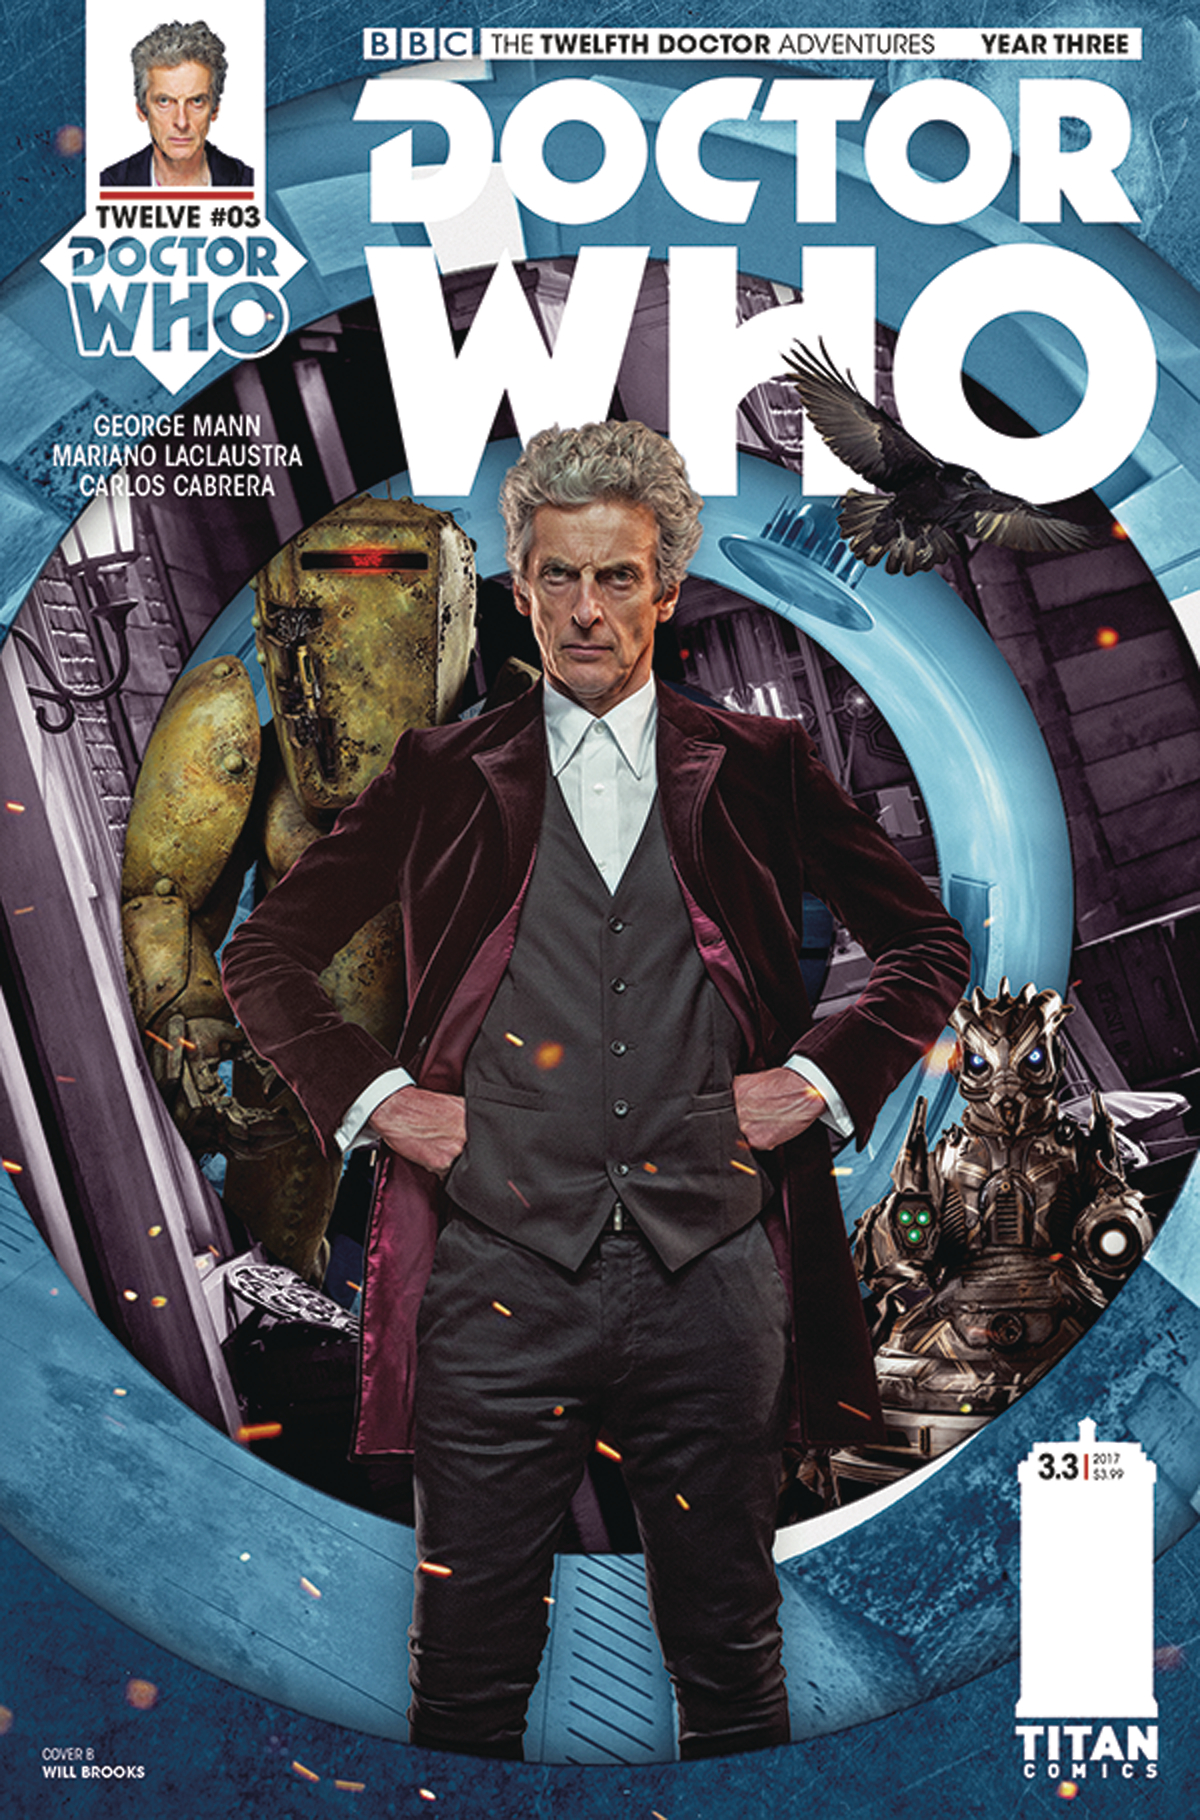 DOCTOR WHO 12TH YEAR THREE #3 CVR B PHOTO